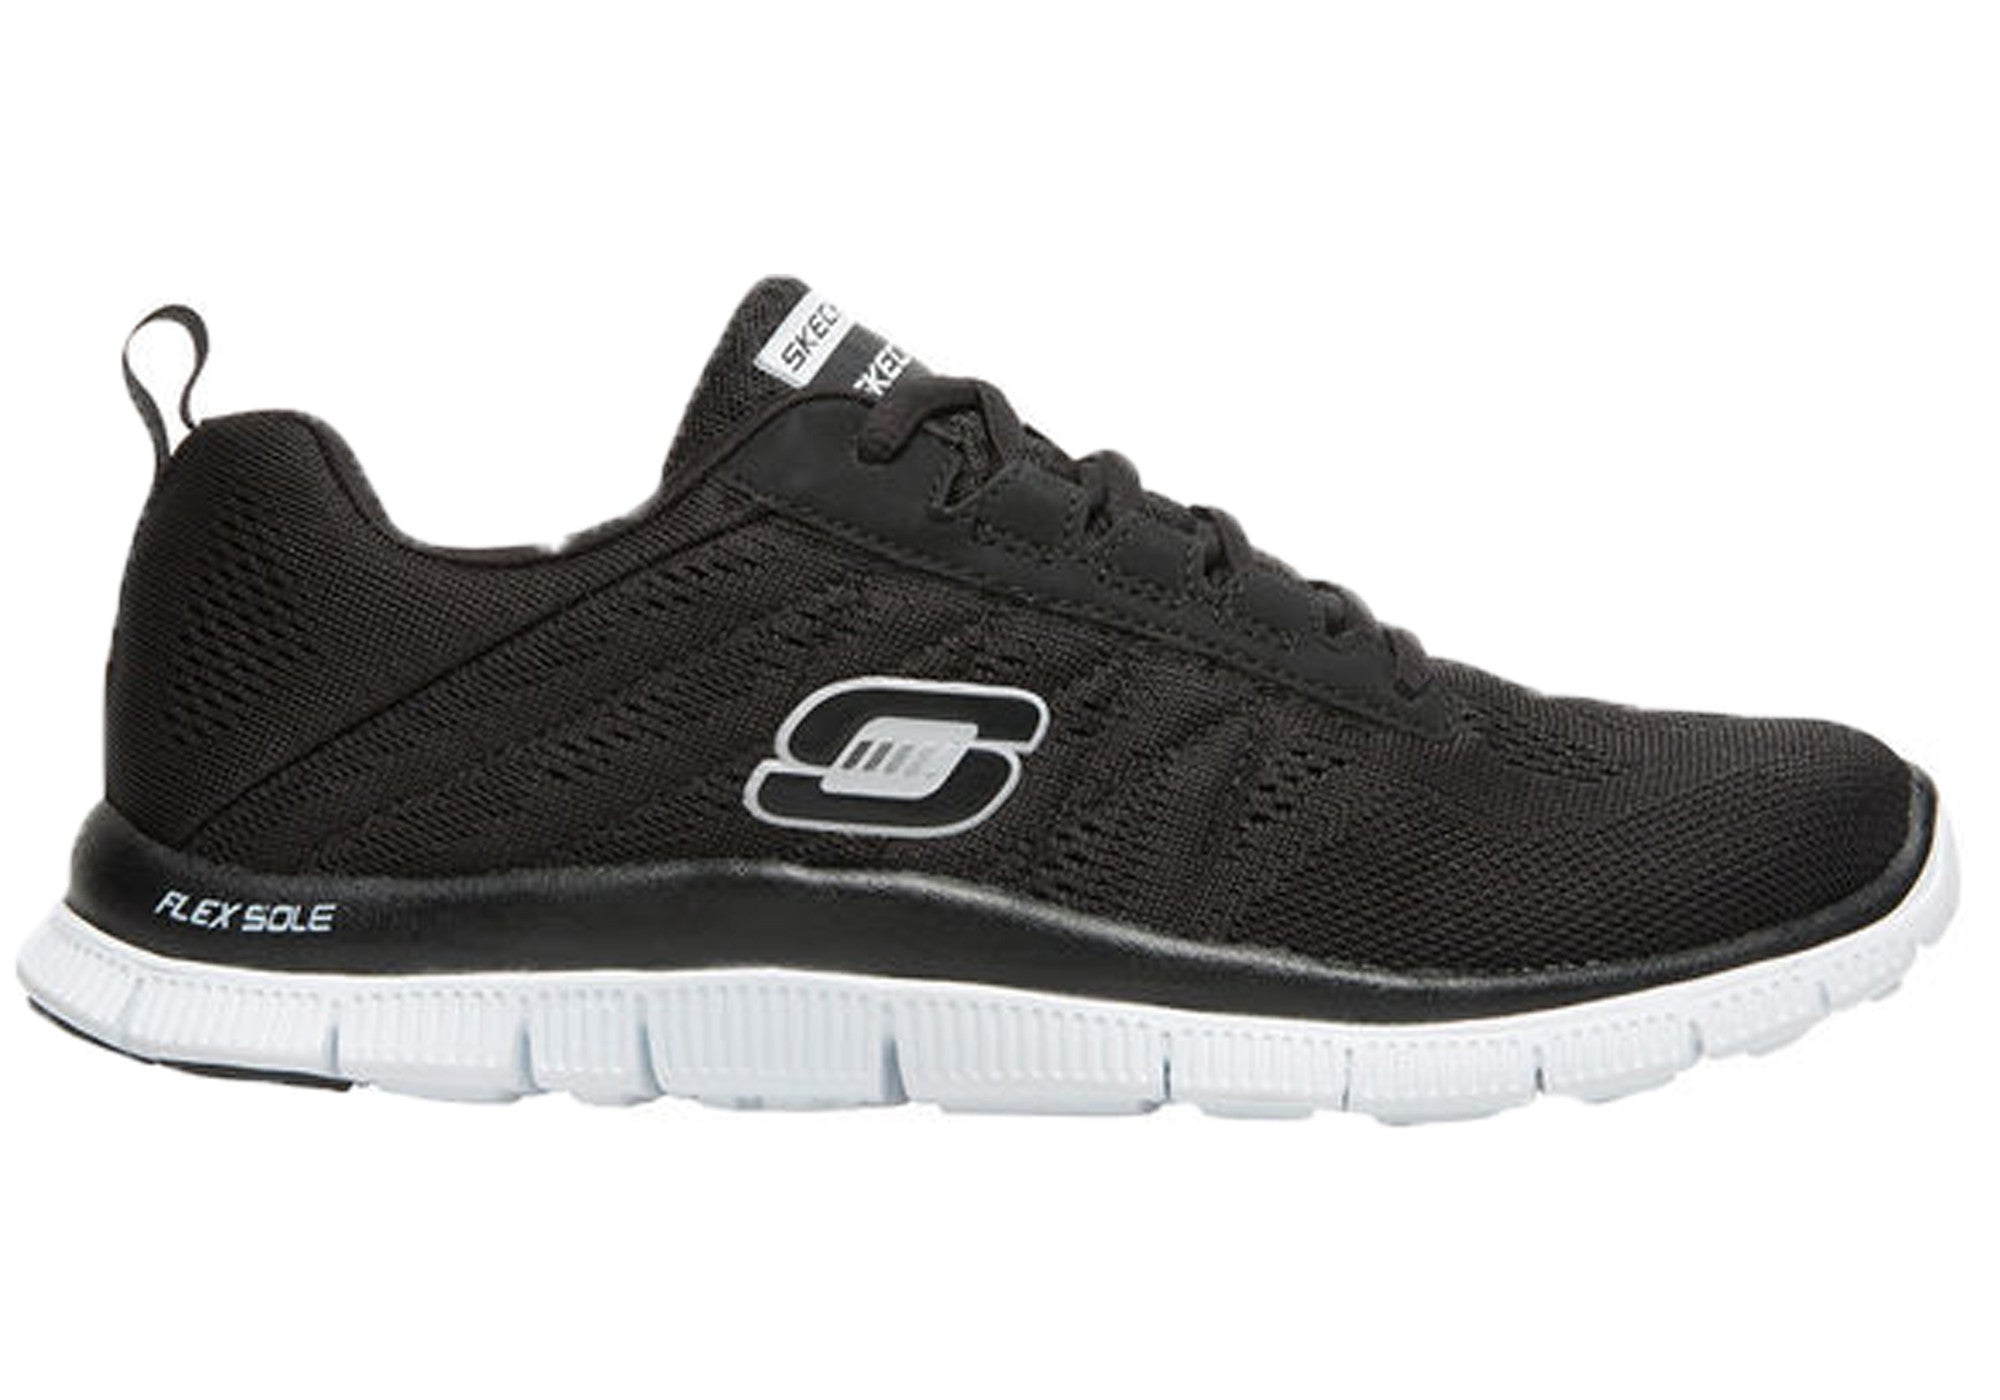 New Skechers Shoes with Memory Foam Beautiful Skechers Flex